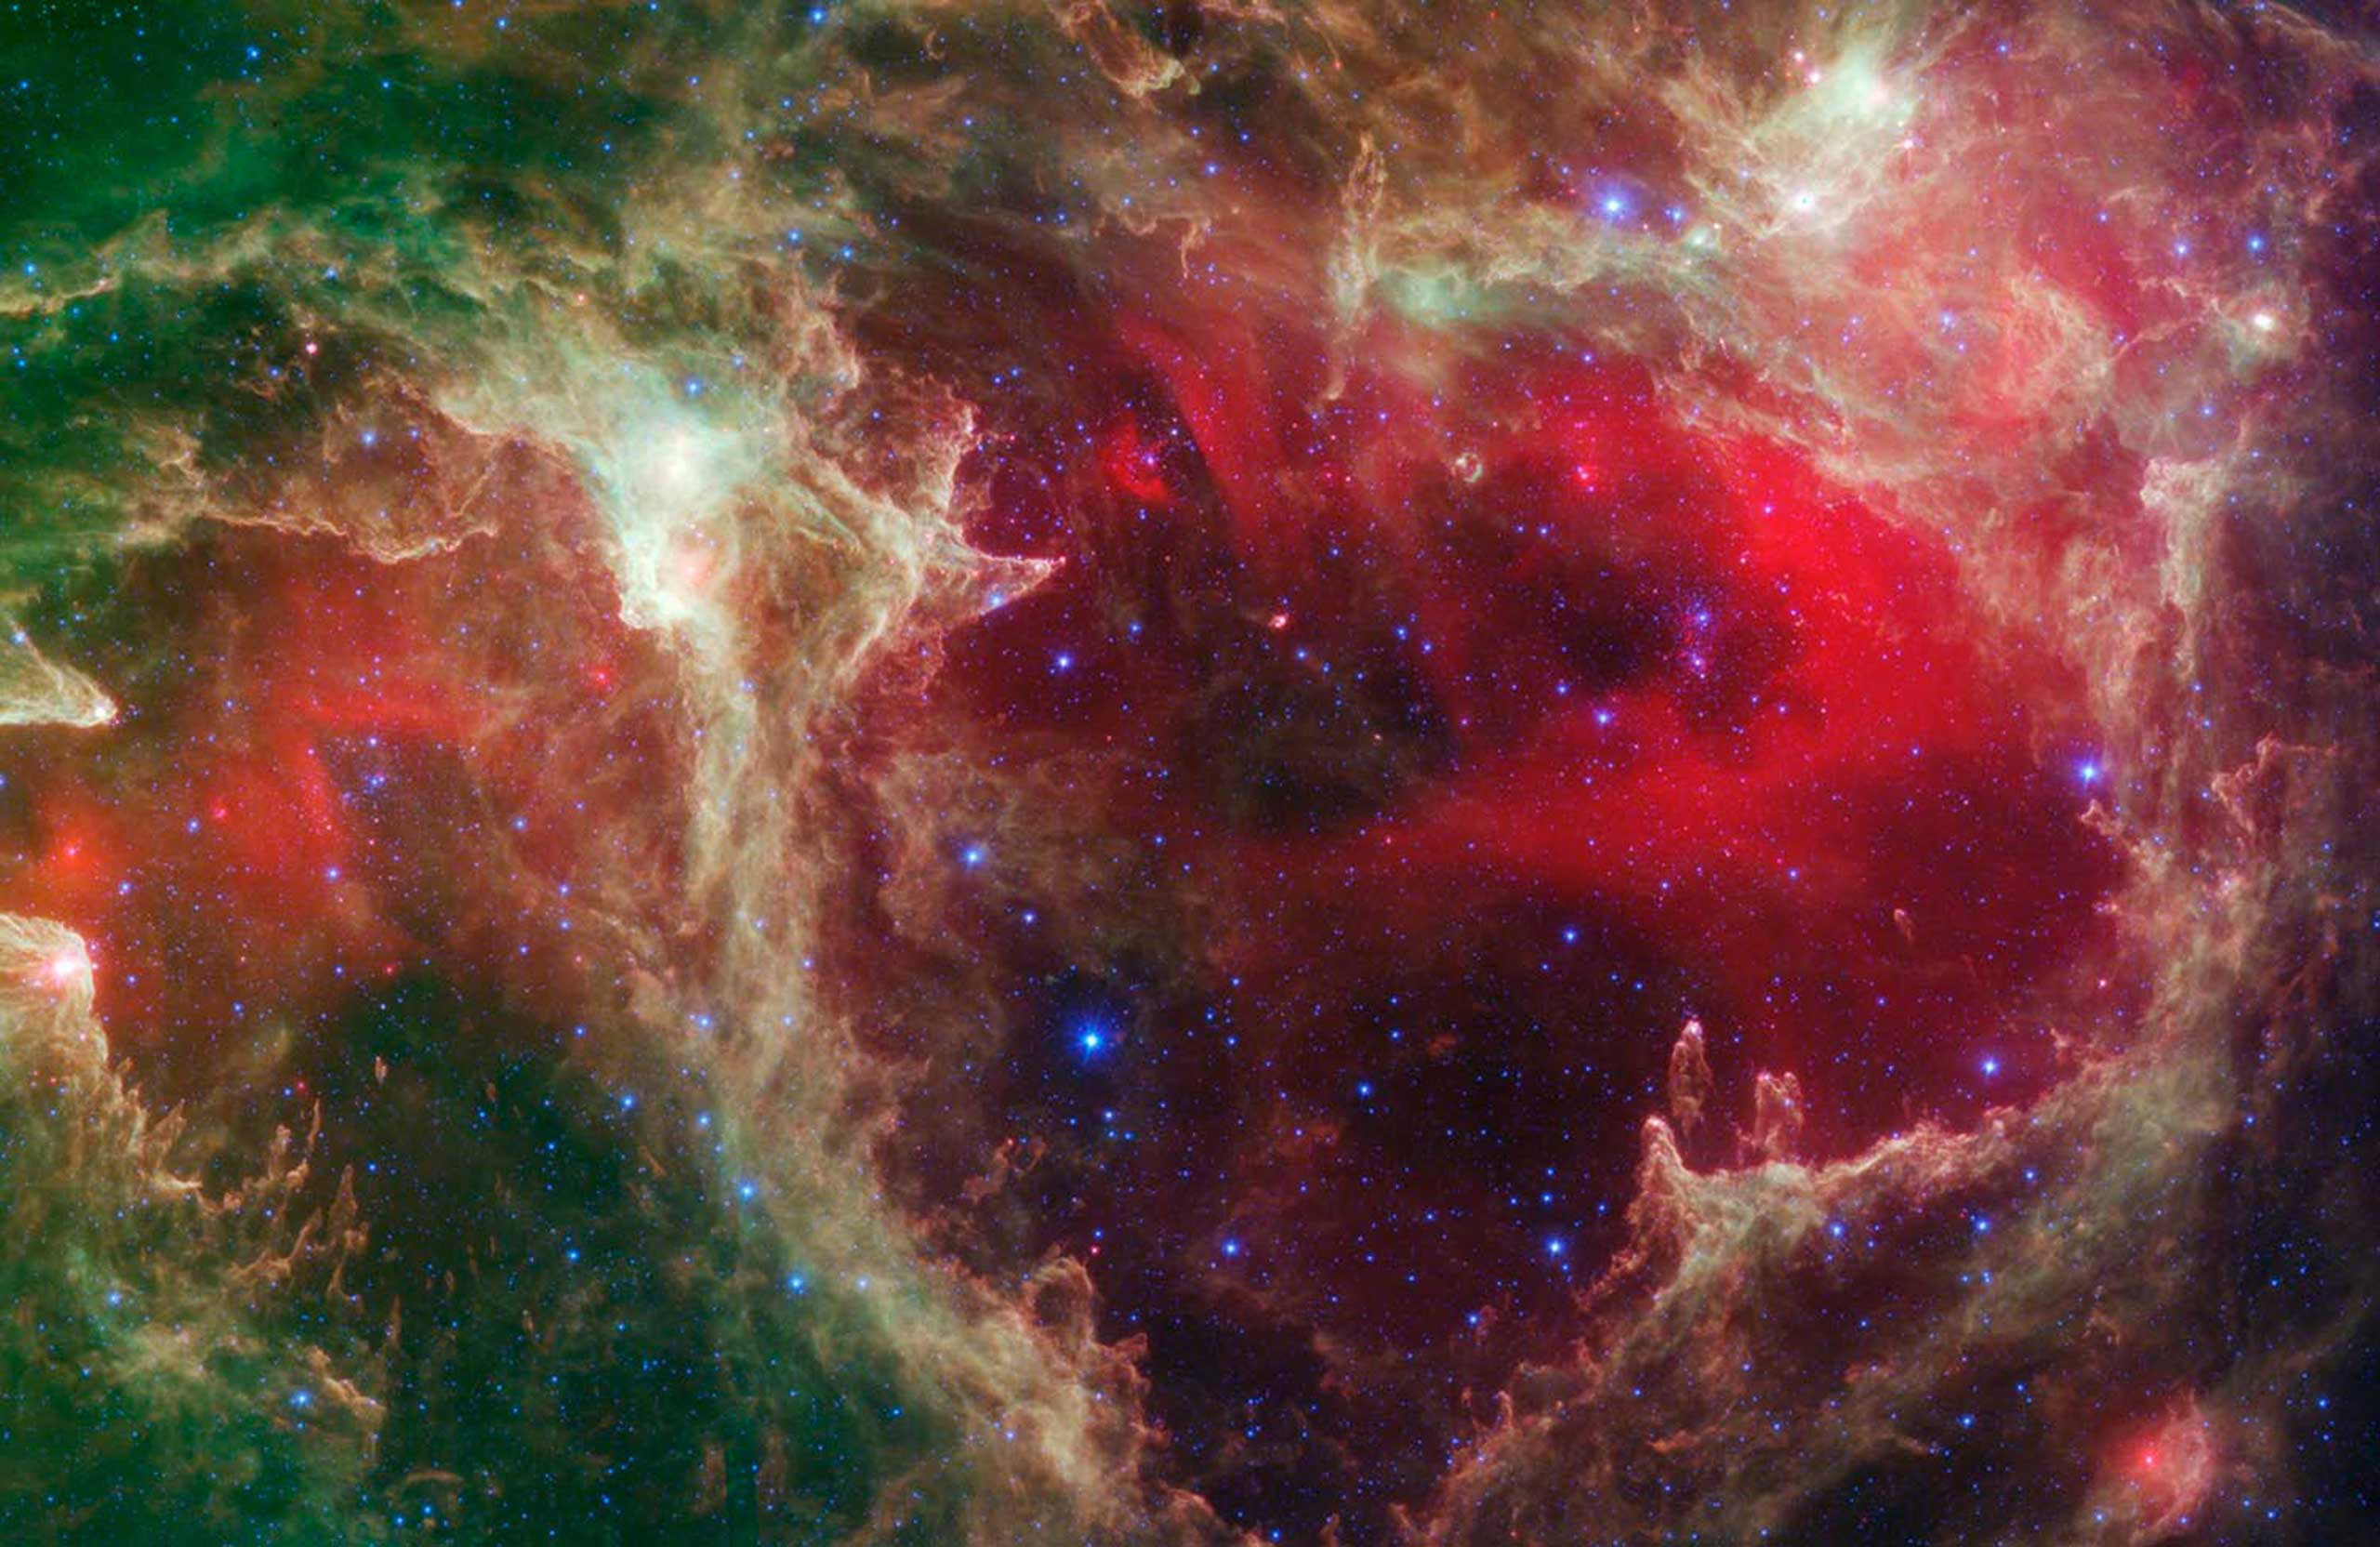 Generations of stars, seen in an infrared portrait from NASA's Spitzer Space Telescope, in the star-forming region, W5. The oldest stars can be seen as blue dots. Younger stars line the rims of the cavities where the old ones are nestled, and some can be seen as pink dots at the tips of the elephant-trunk-like pillars. The white knotty areas are where the youngest stars are forming. Red shows heated dust, while green indicates dense clouds.